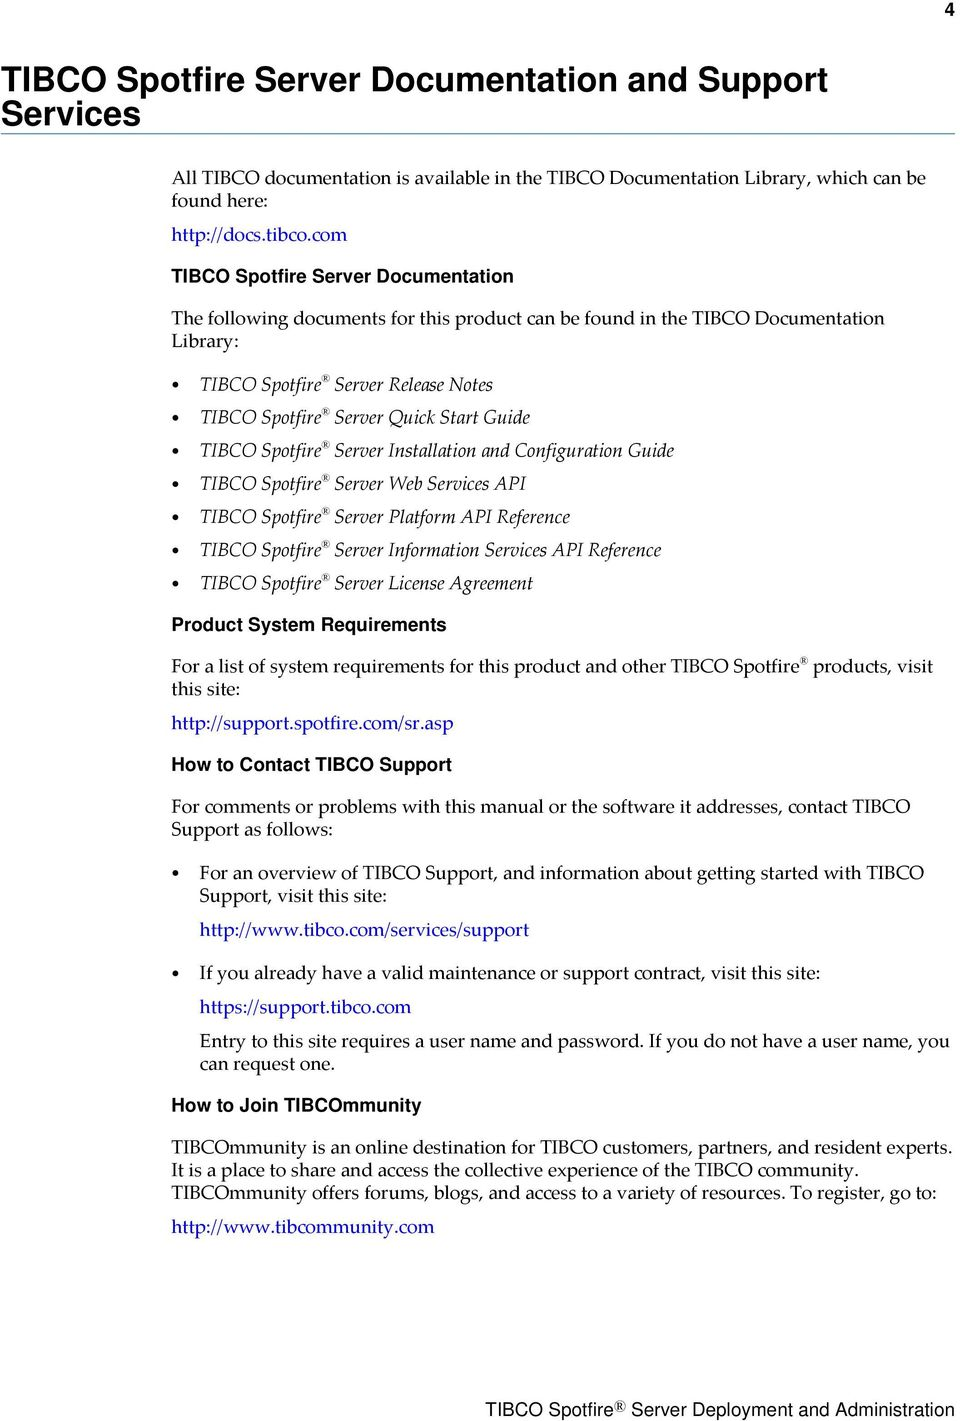 Guide TIBCO Spotfire Server Installation and Configuration Guide TIBCO Spotfire Server Web Services API TIBCO Spotfire Server Platform API Reference TIBCO Spotfire Server Information Services API